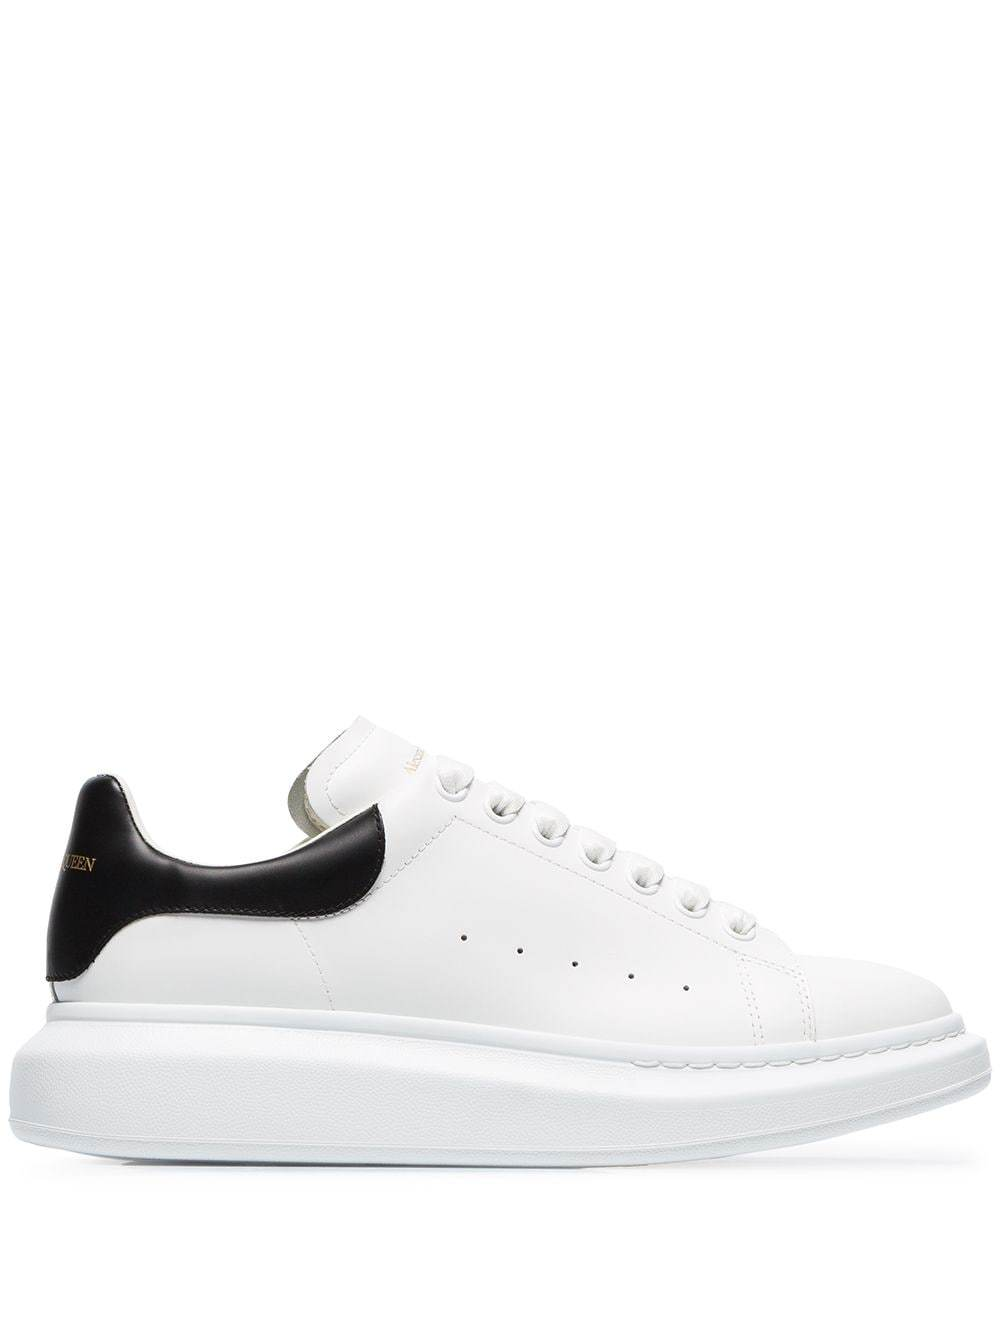 ALEXANDER MCQUEEN oversized sole sneakers white/black